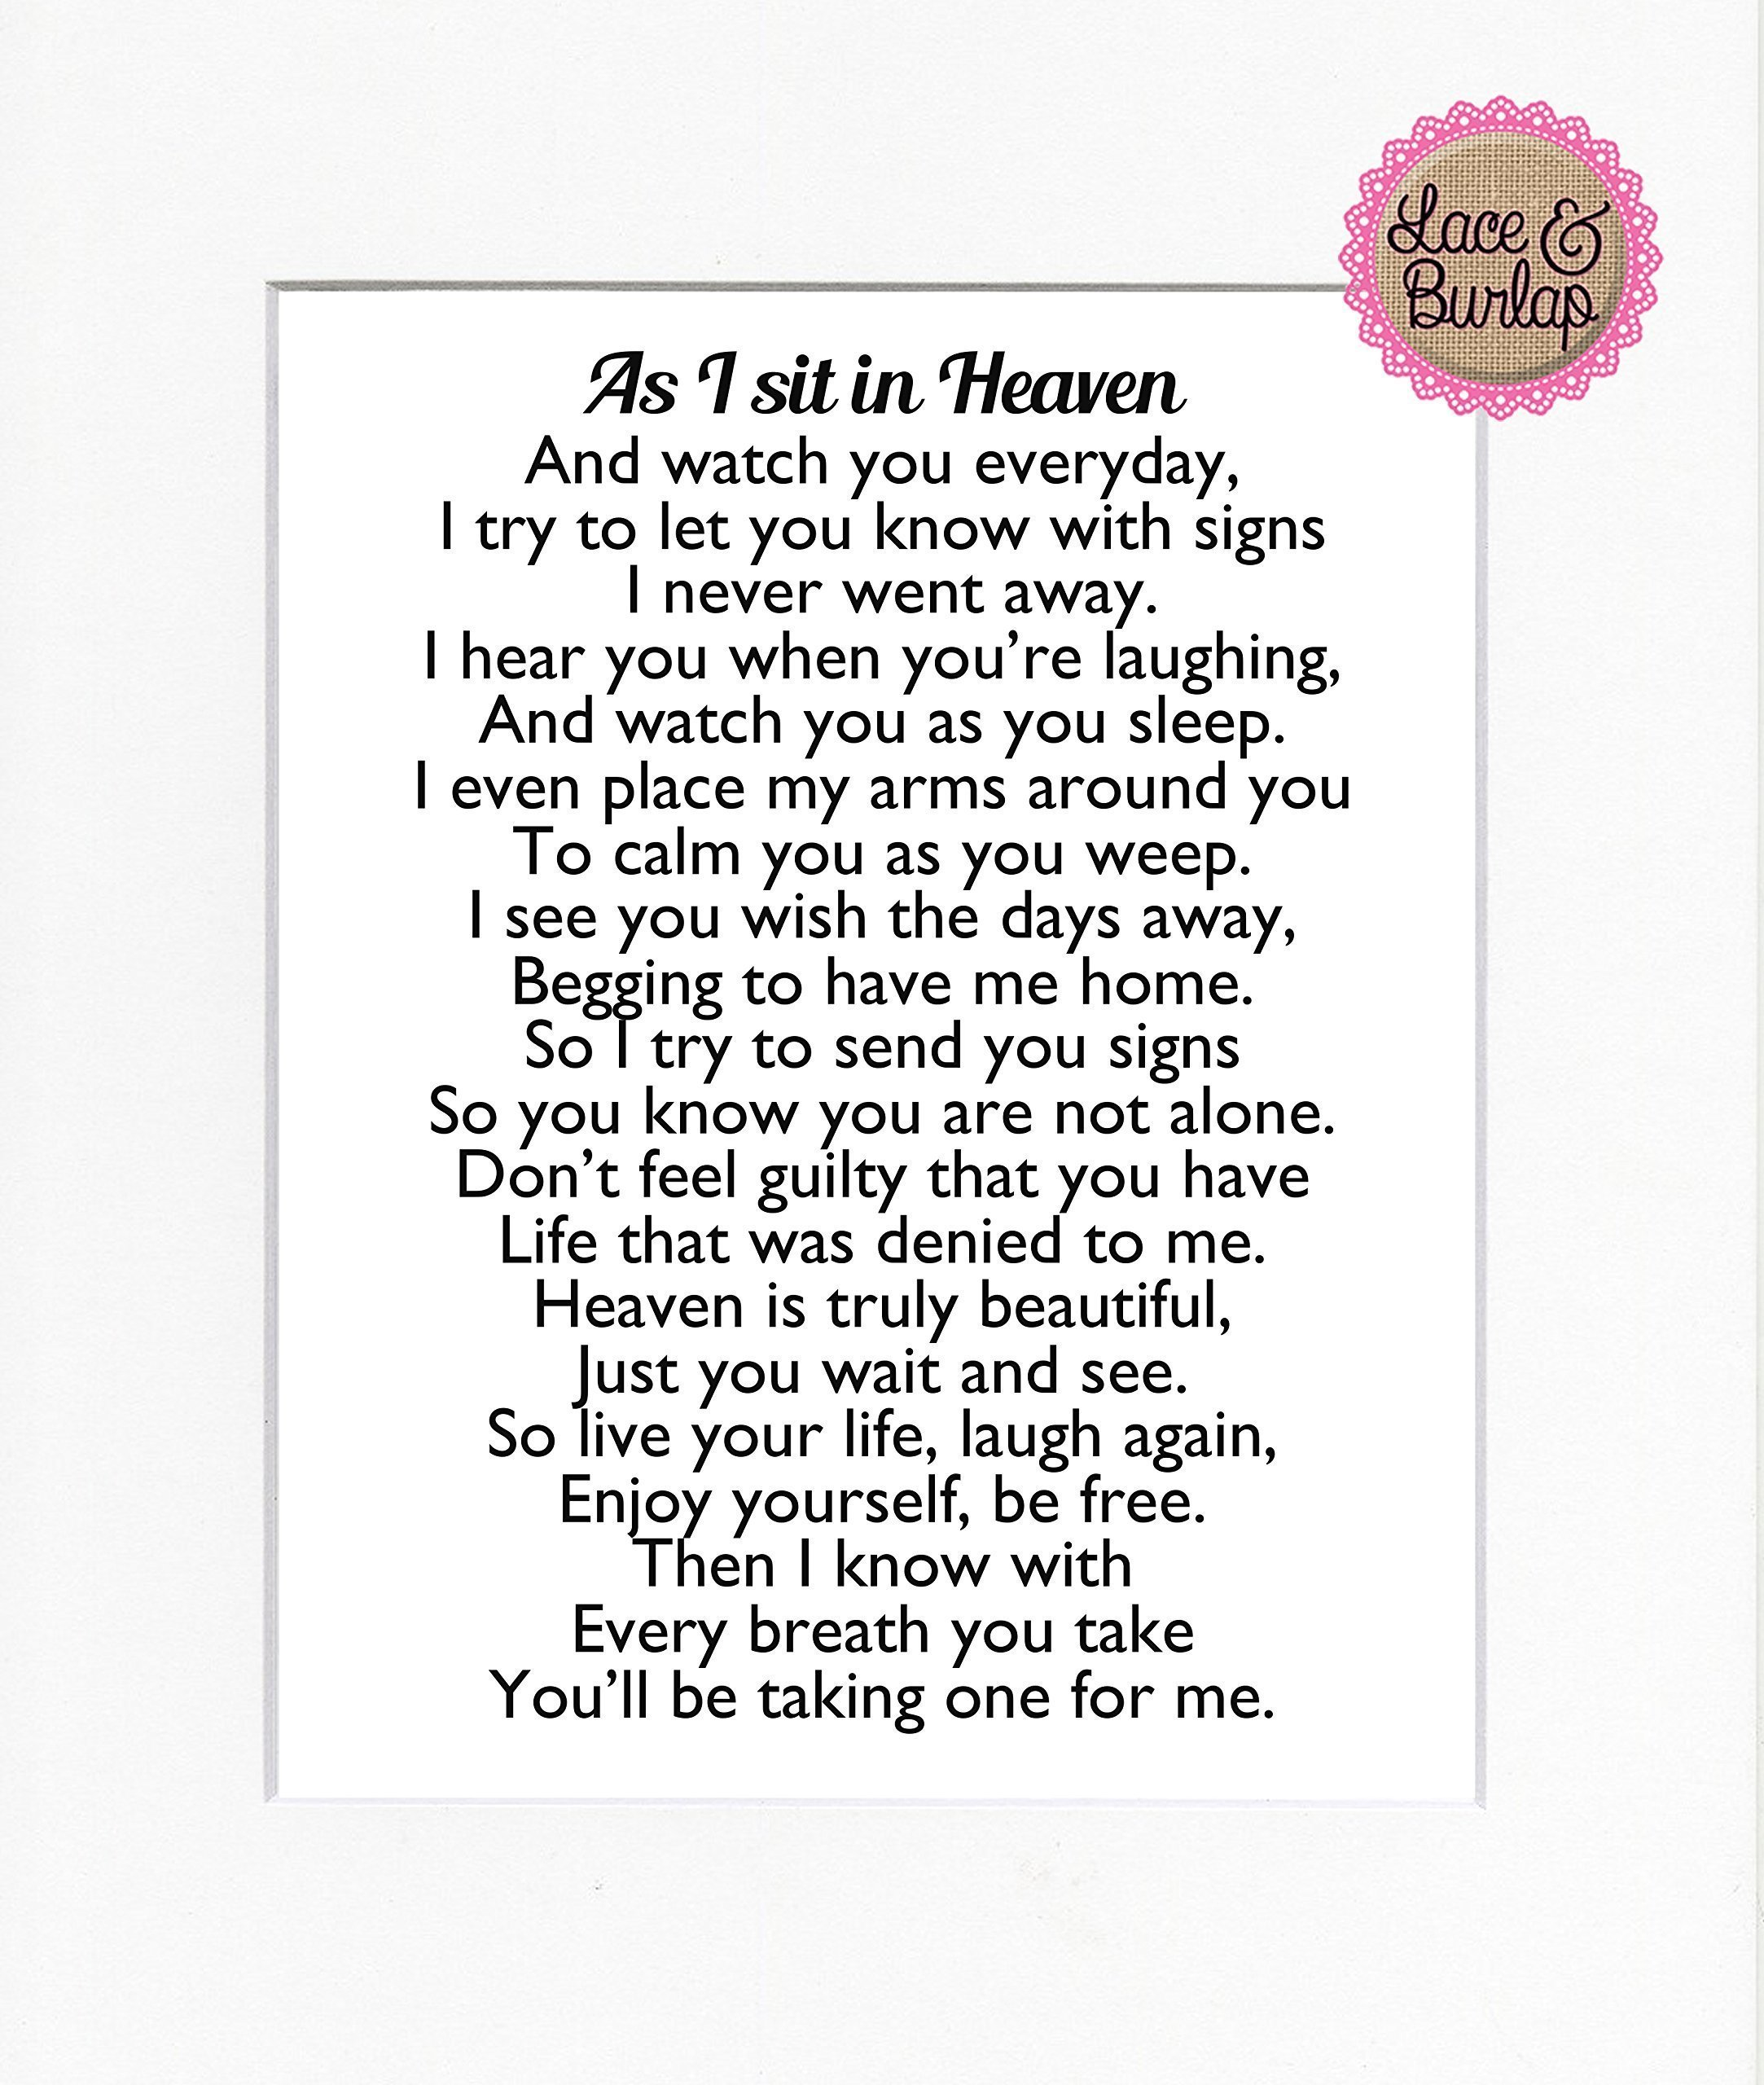 8x10 UNFRAMED PRINT As I Sit in Heaven Poem / Print Sign / Memorial Remembrance In Loving Memory Wall Décor by Lace & Burlap Shop (Image #1)